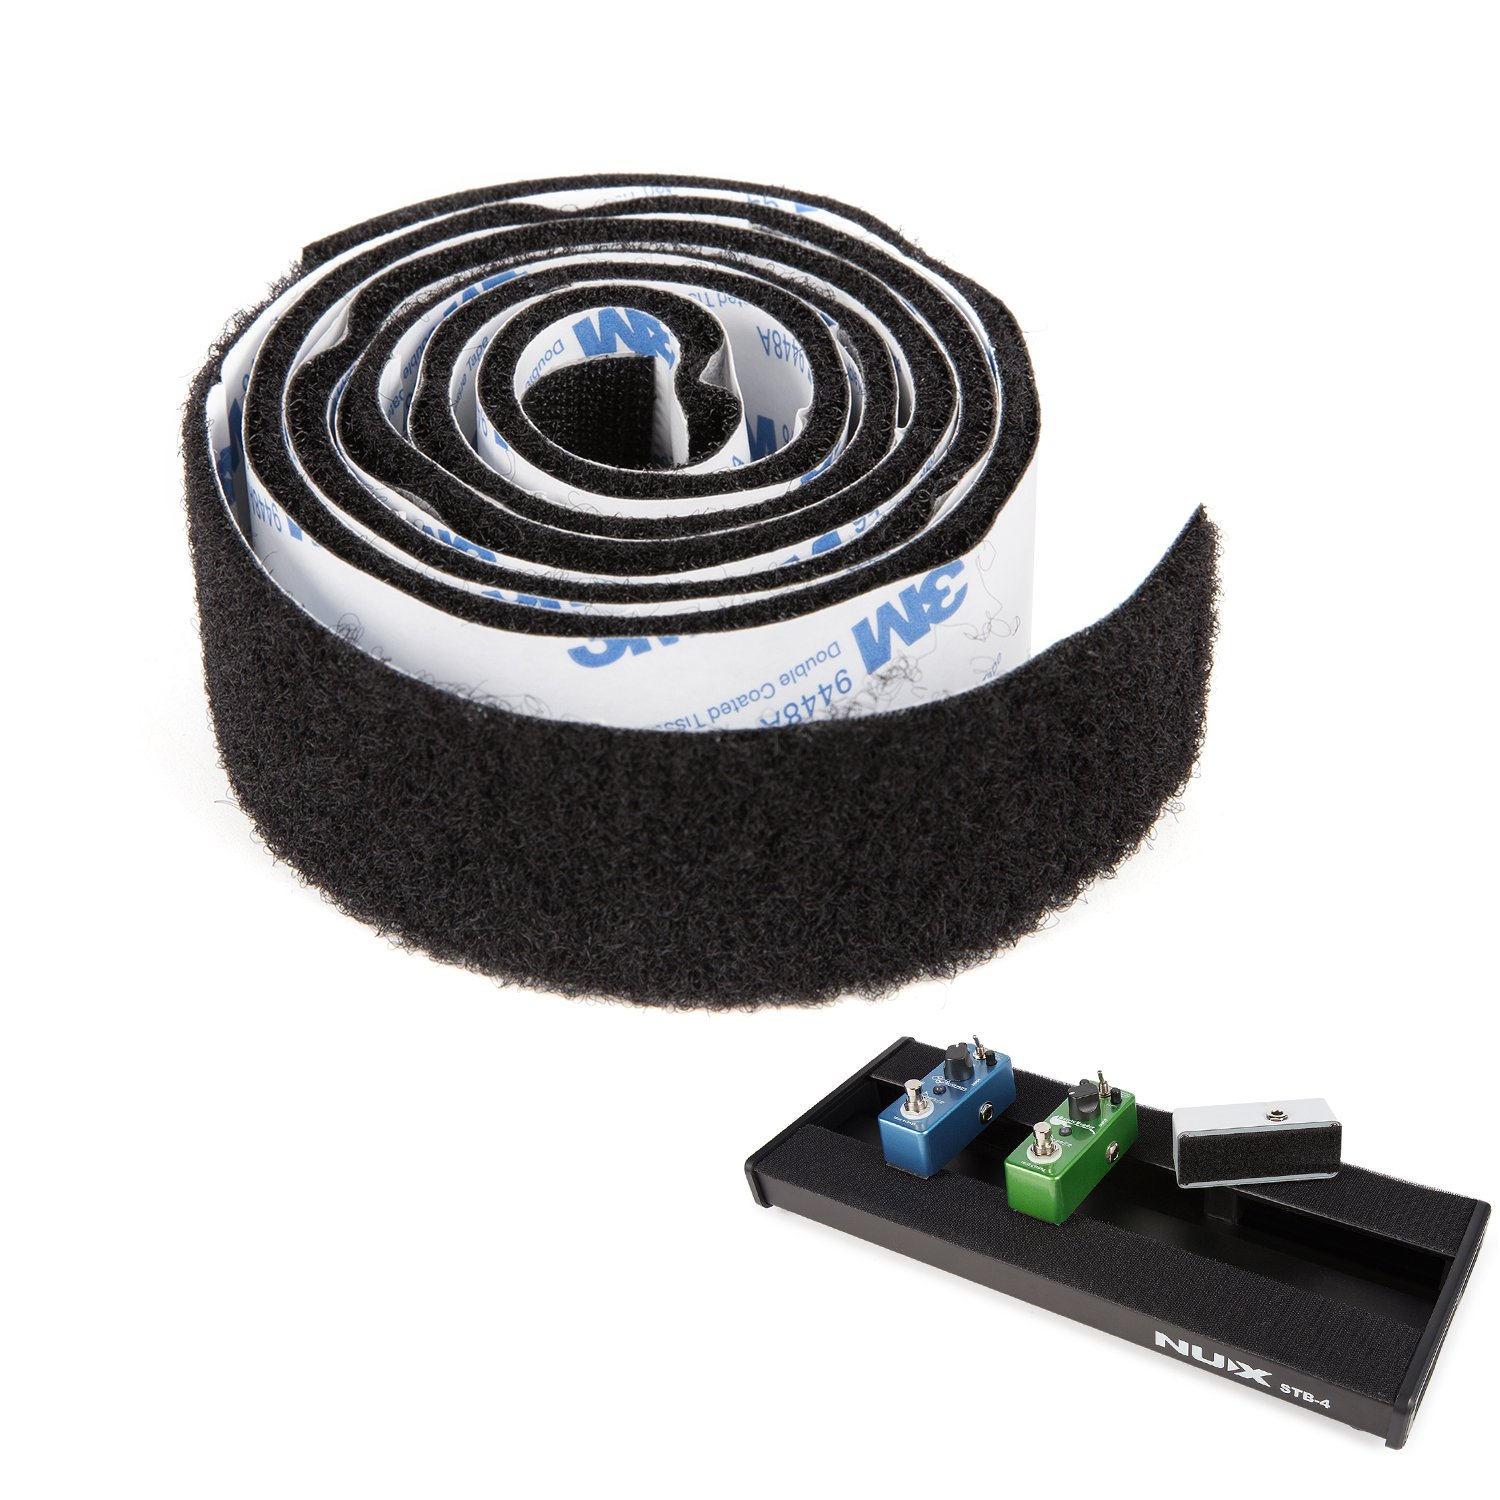 Donner Pedalboard Velcro Guitar Pedal Mounting Tape Length 1m